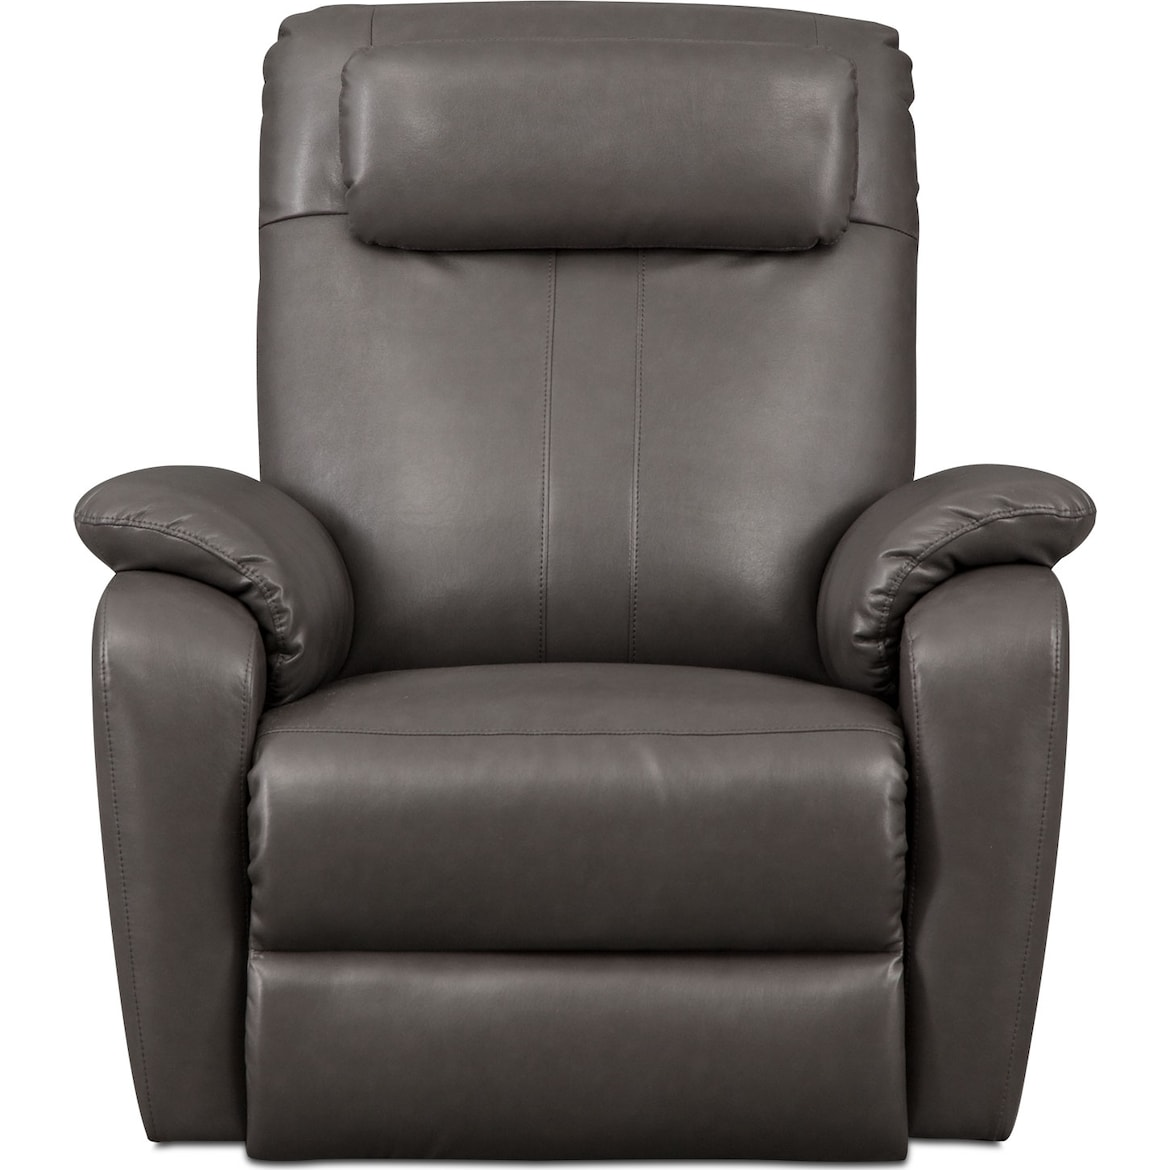 Sparta Rocker Recliner Value City Furniture And Mattresses